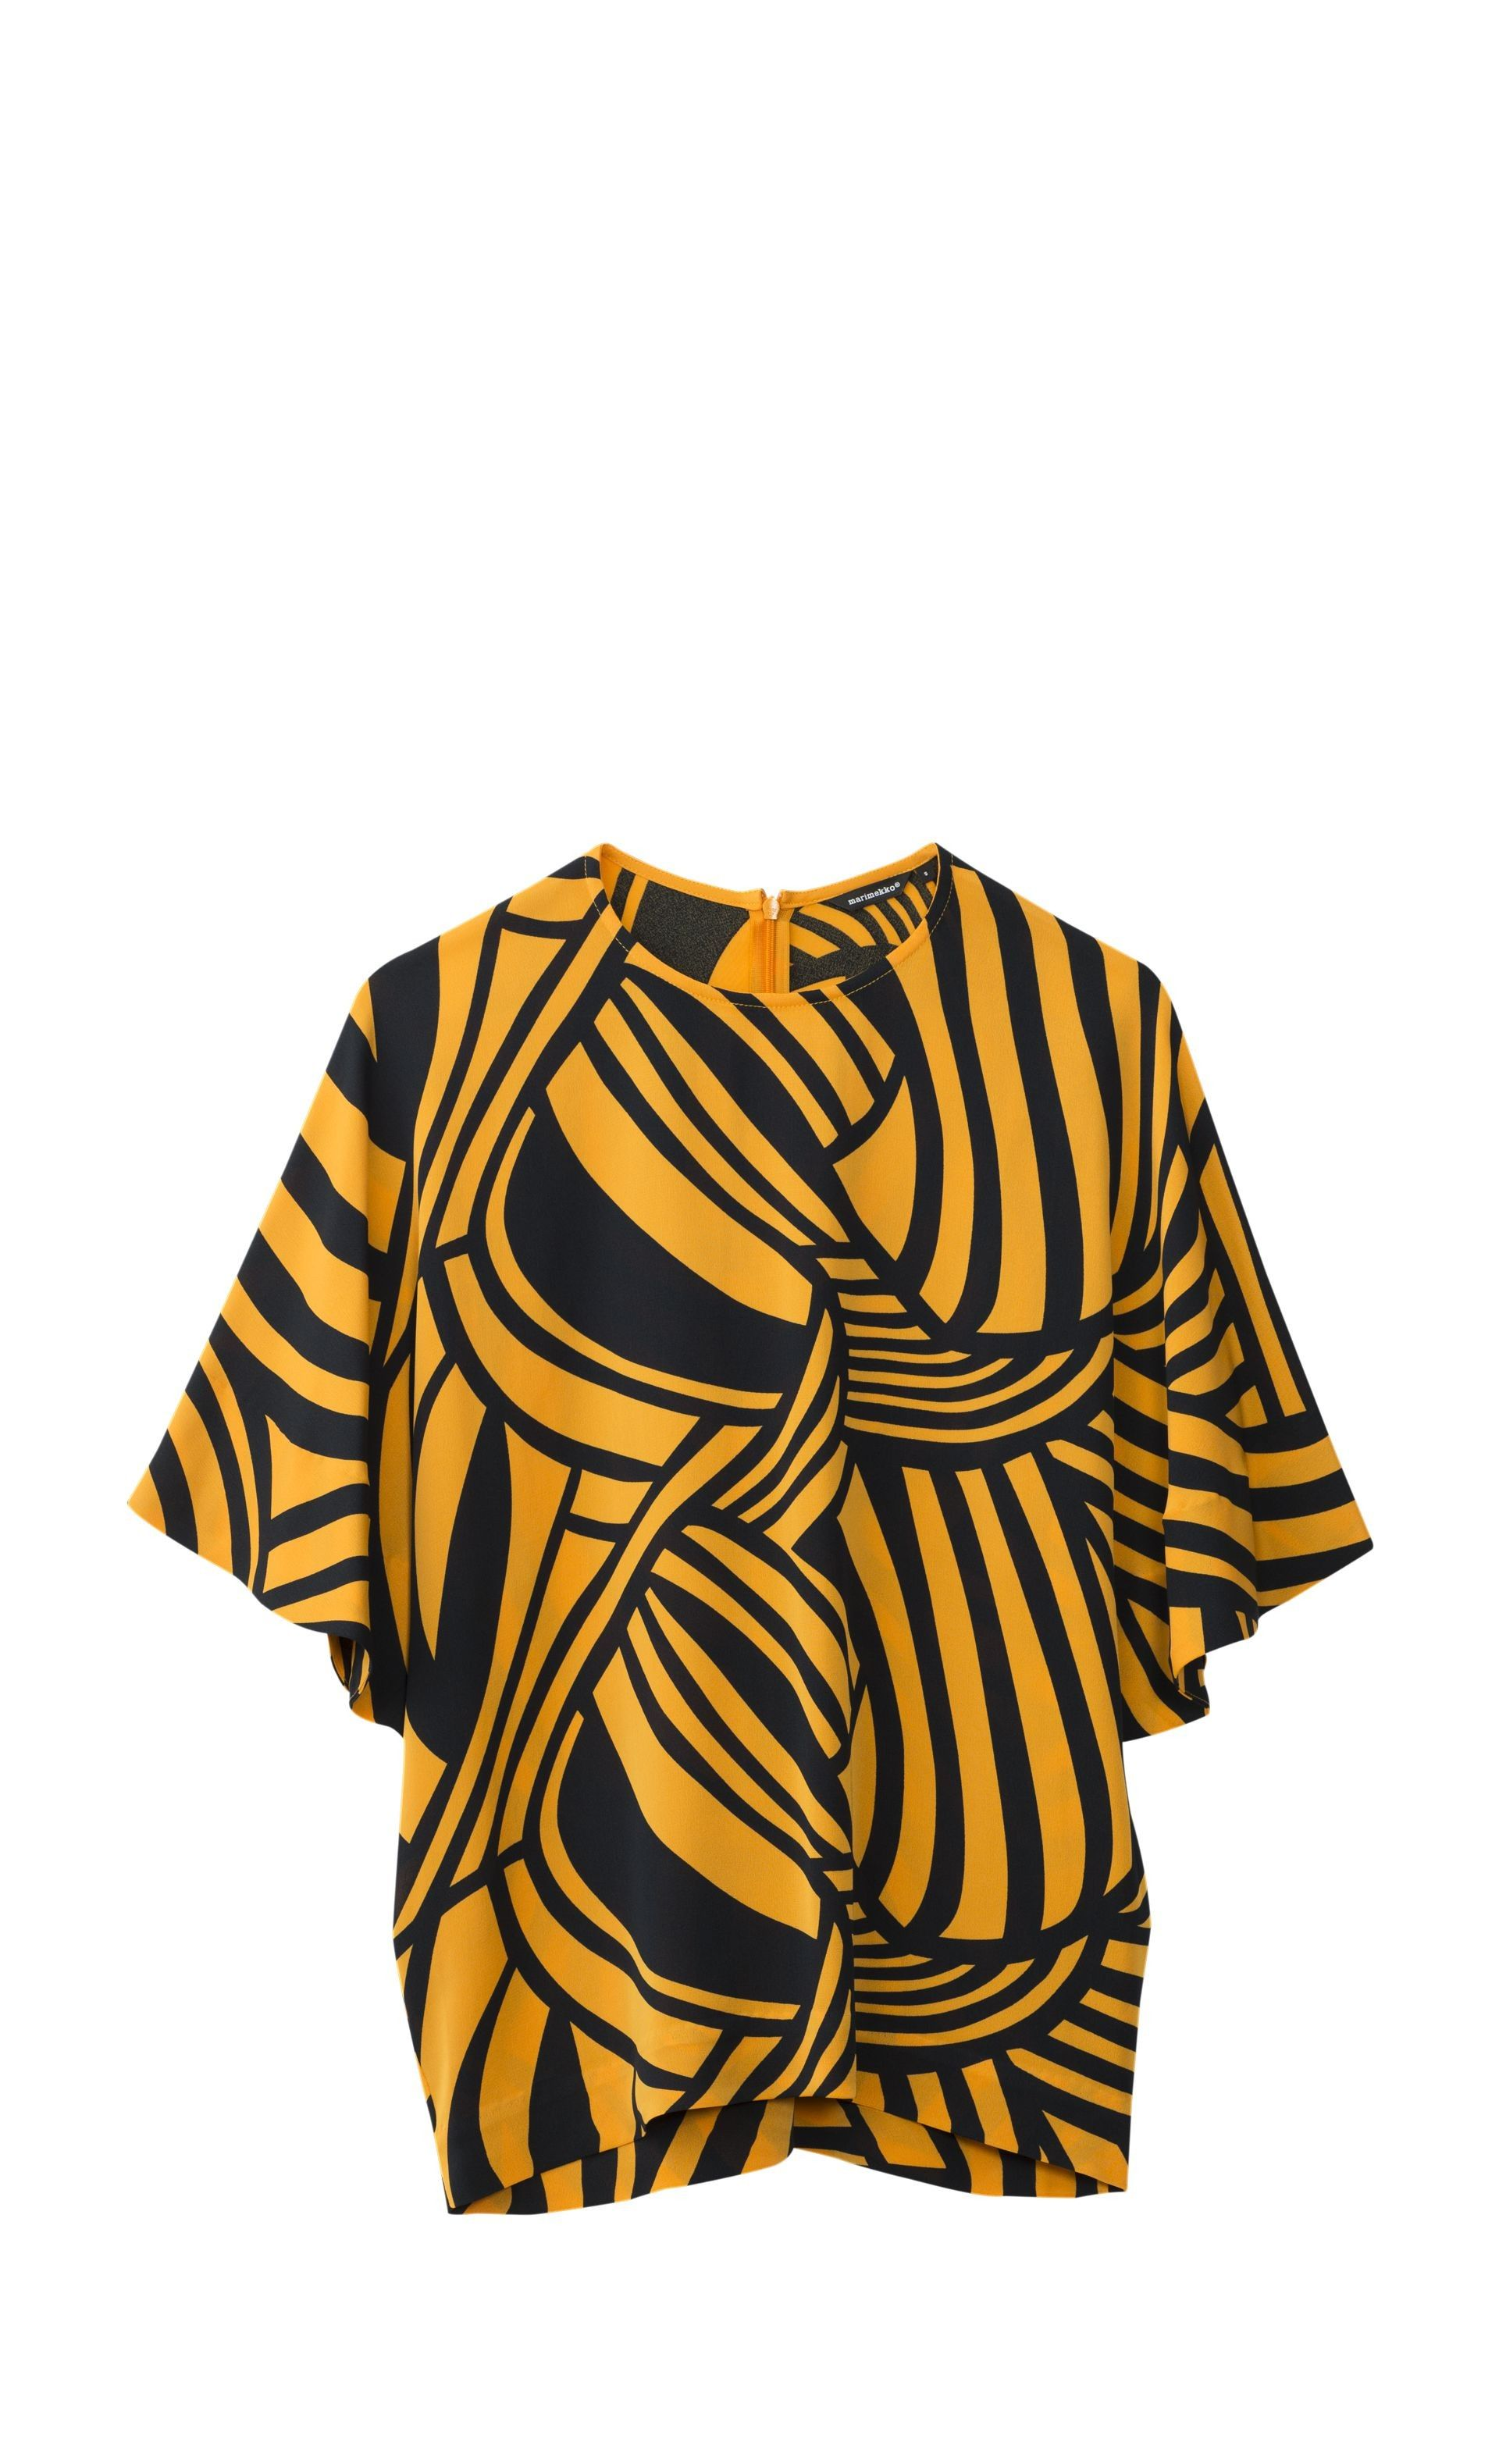 This loose shirt features the Pikku Salme print and is made of a lightweight viscose-silk blend. It has a hidden rear zip closure, wide drape sleeves to the elbow, and a straight cut to the hip hemline.